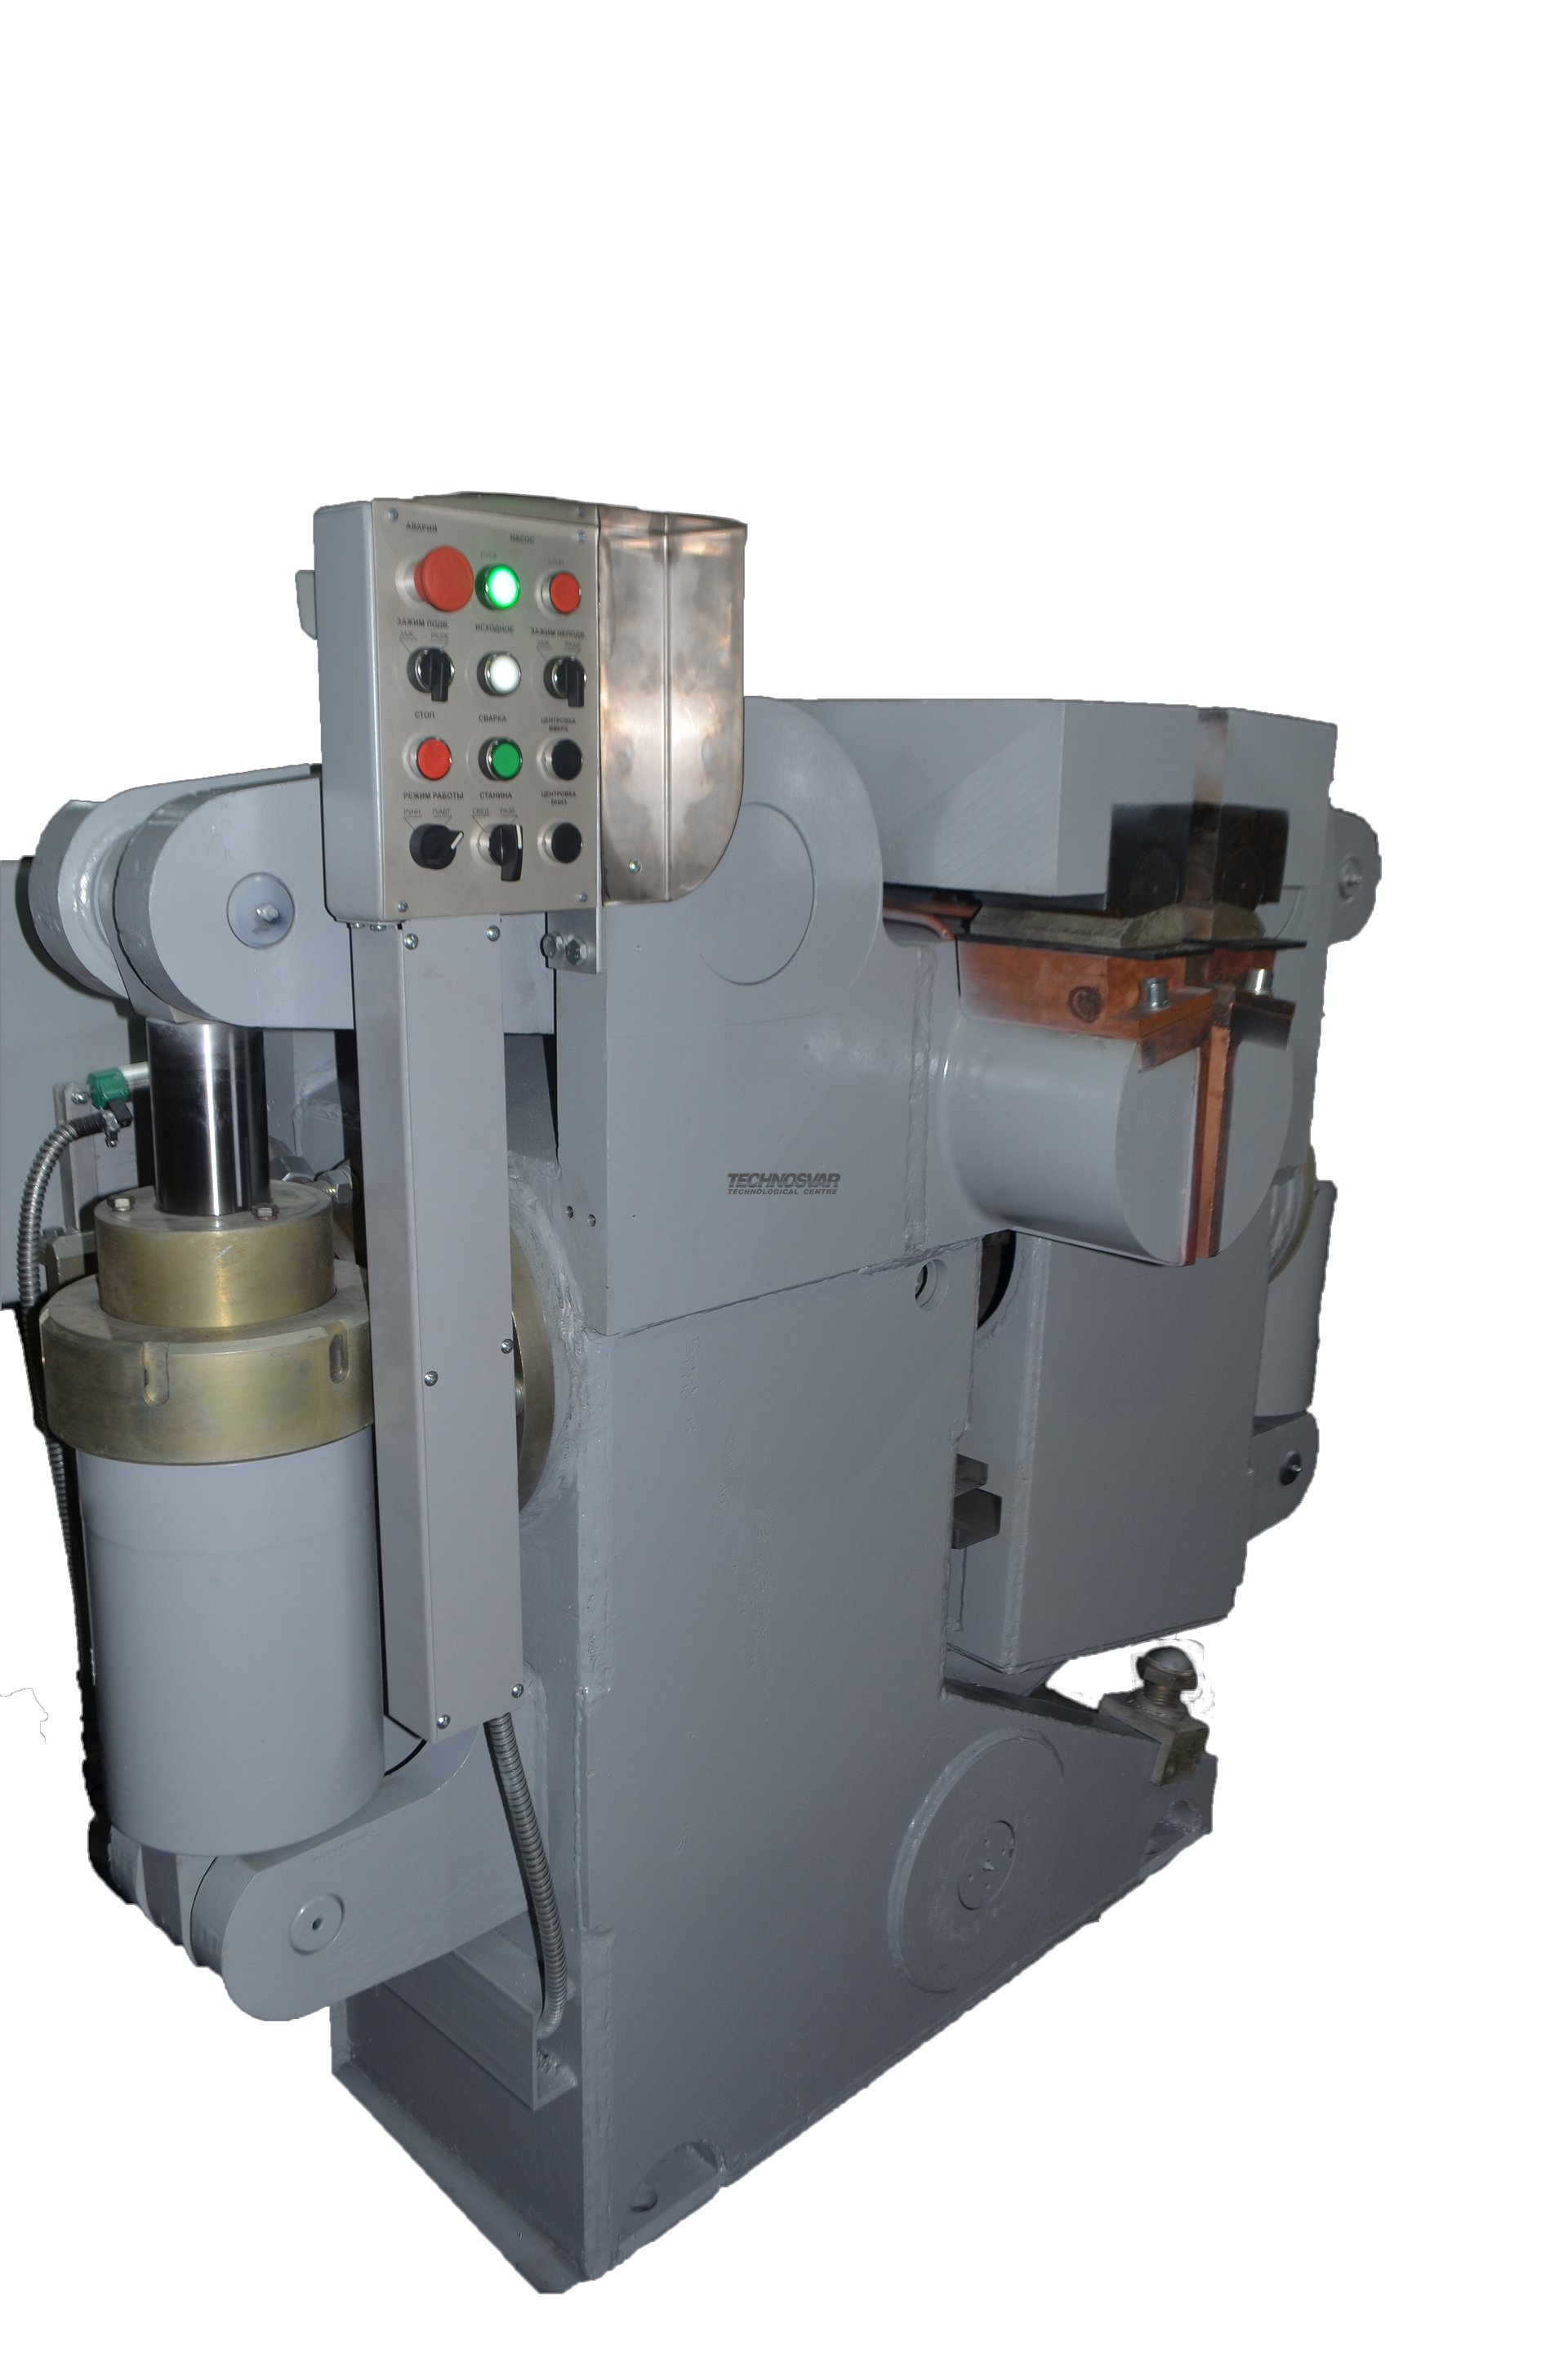 The machine K-617 for flash butt welding type MSO-1603